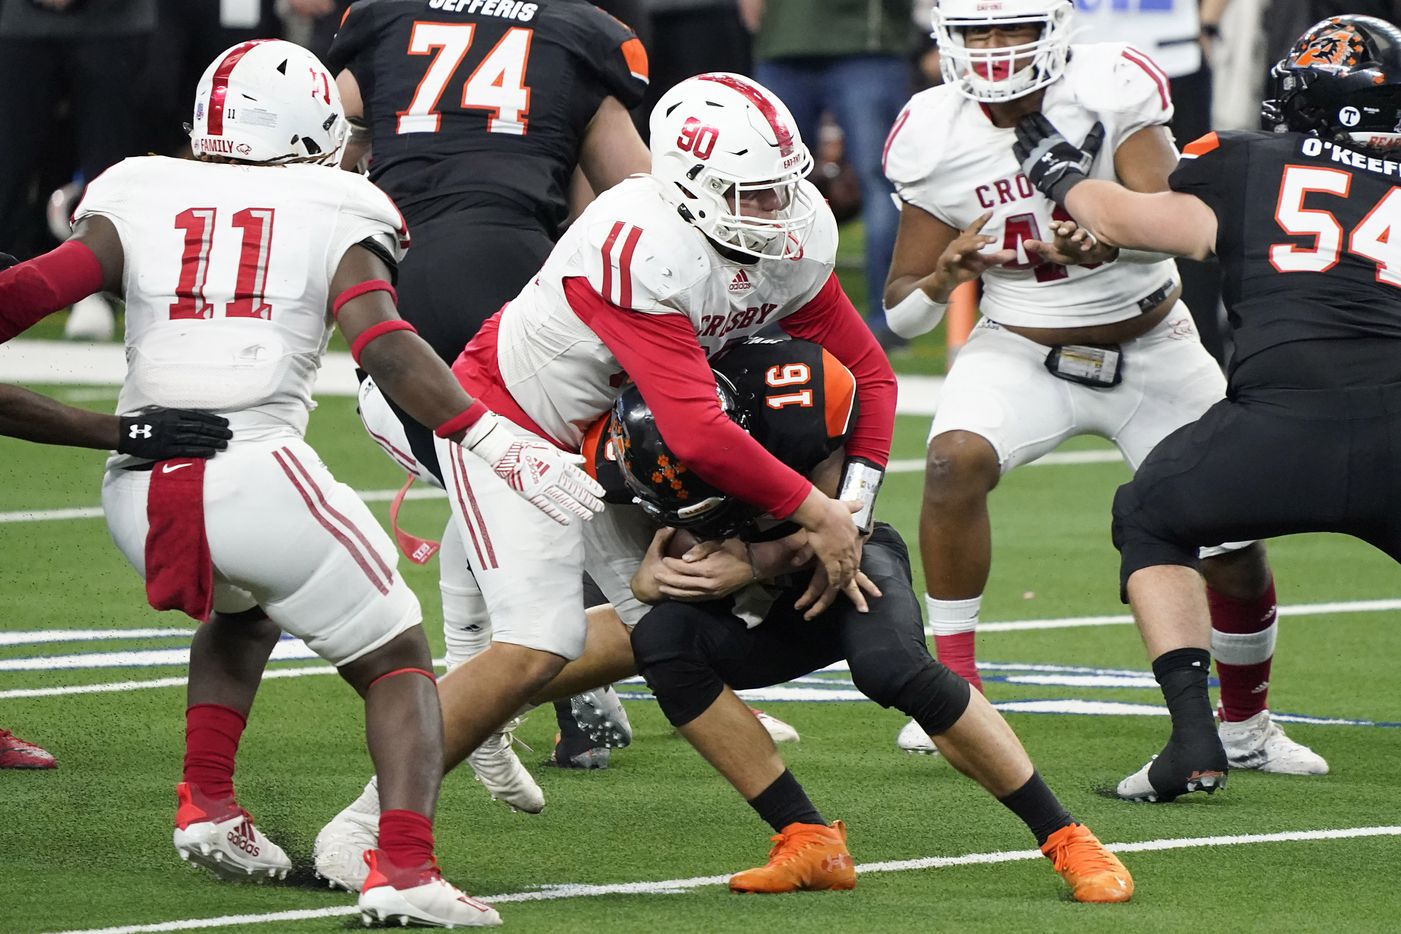 Aledo quarterback Brayden Fowler-Nicolosi (16) is sacked by Crosby defensive lineman Wade Lewis (90) during the first half of the Class 5A Division II state football championship game at AT&T Stadium on Friday, Jan. 15, 2021, in Arlington. (Smiley N. Pool/The Dallas Morning News)